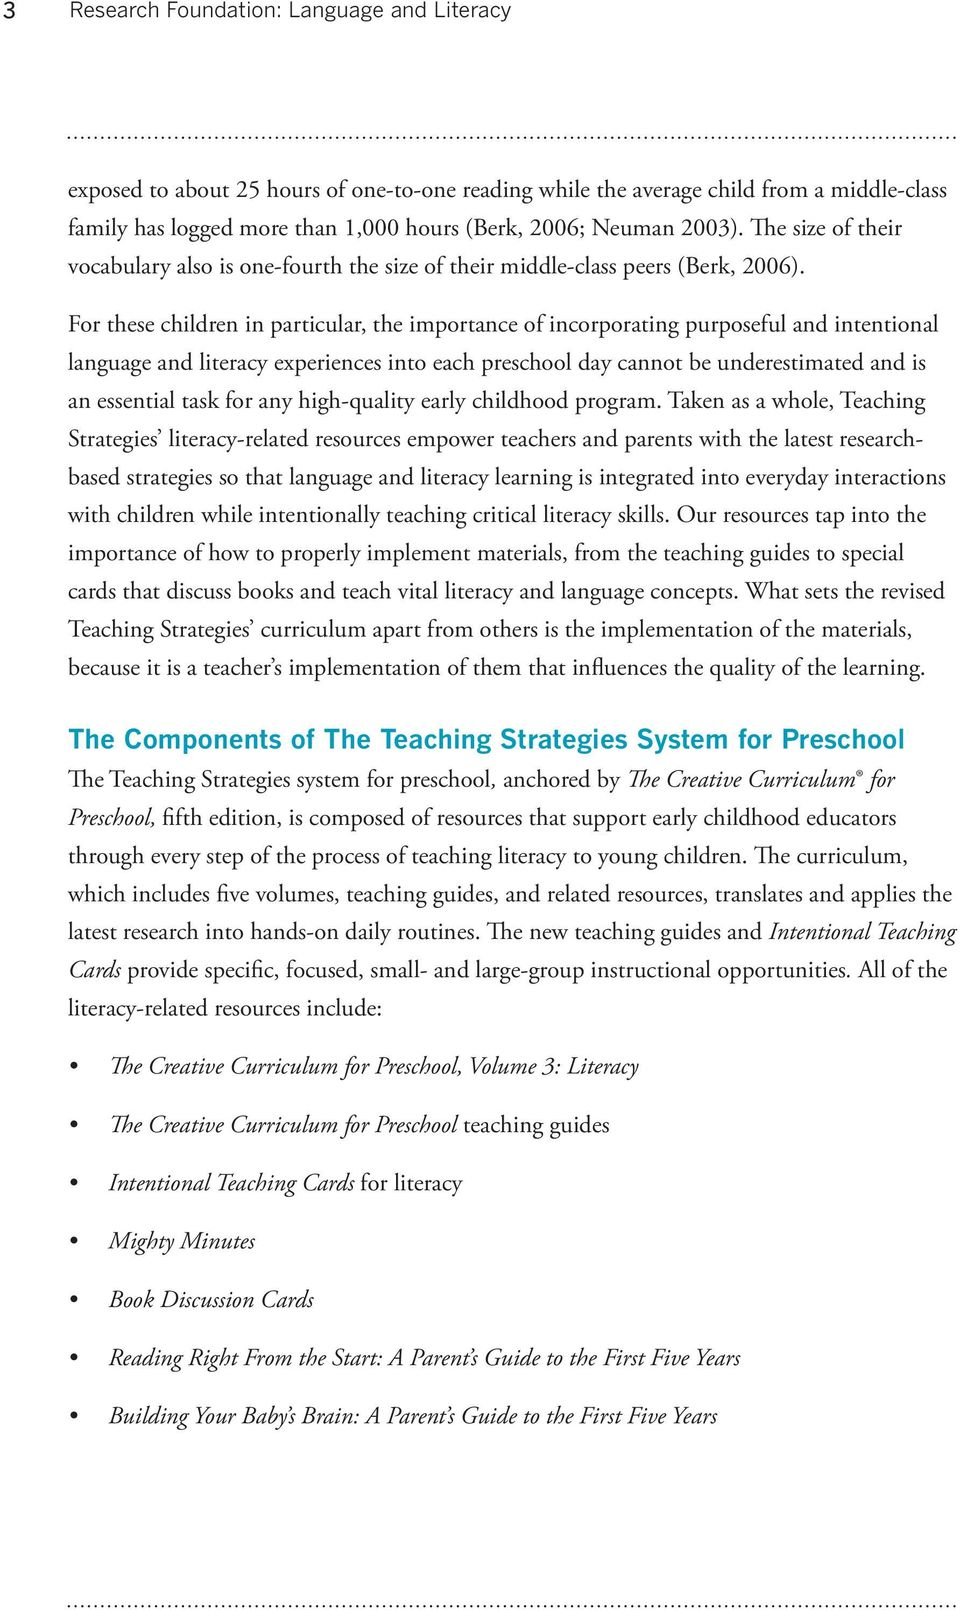 Research Foundation: Language and Literacy - PDF